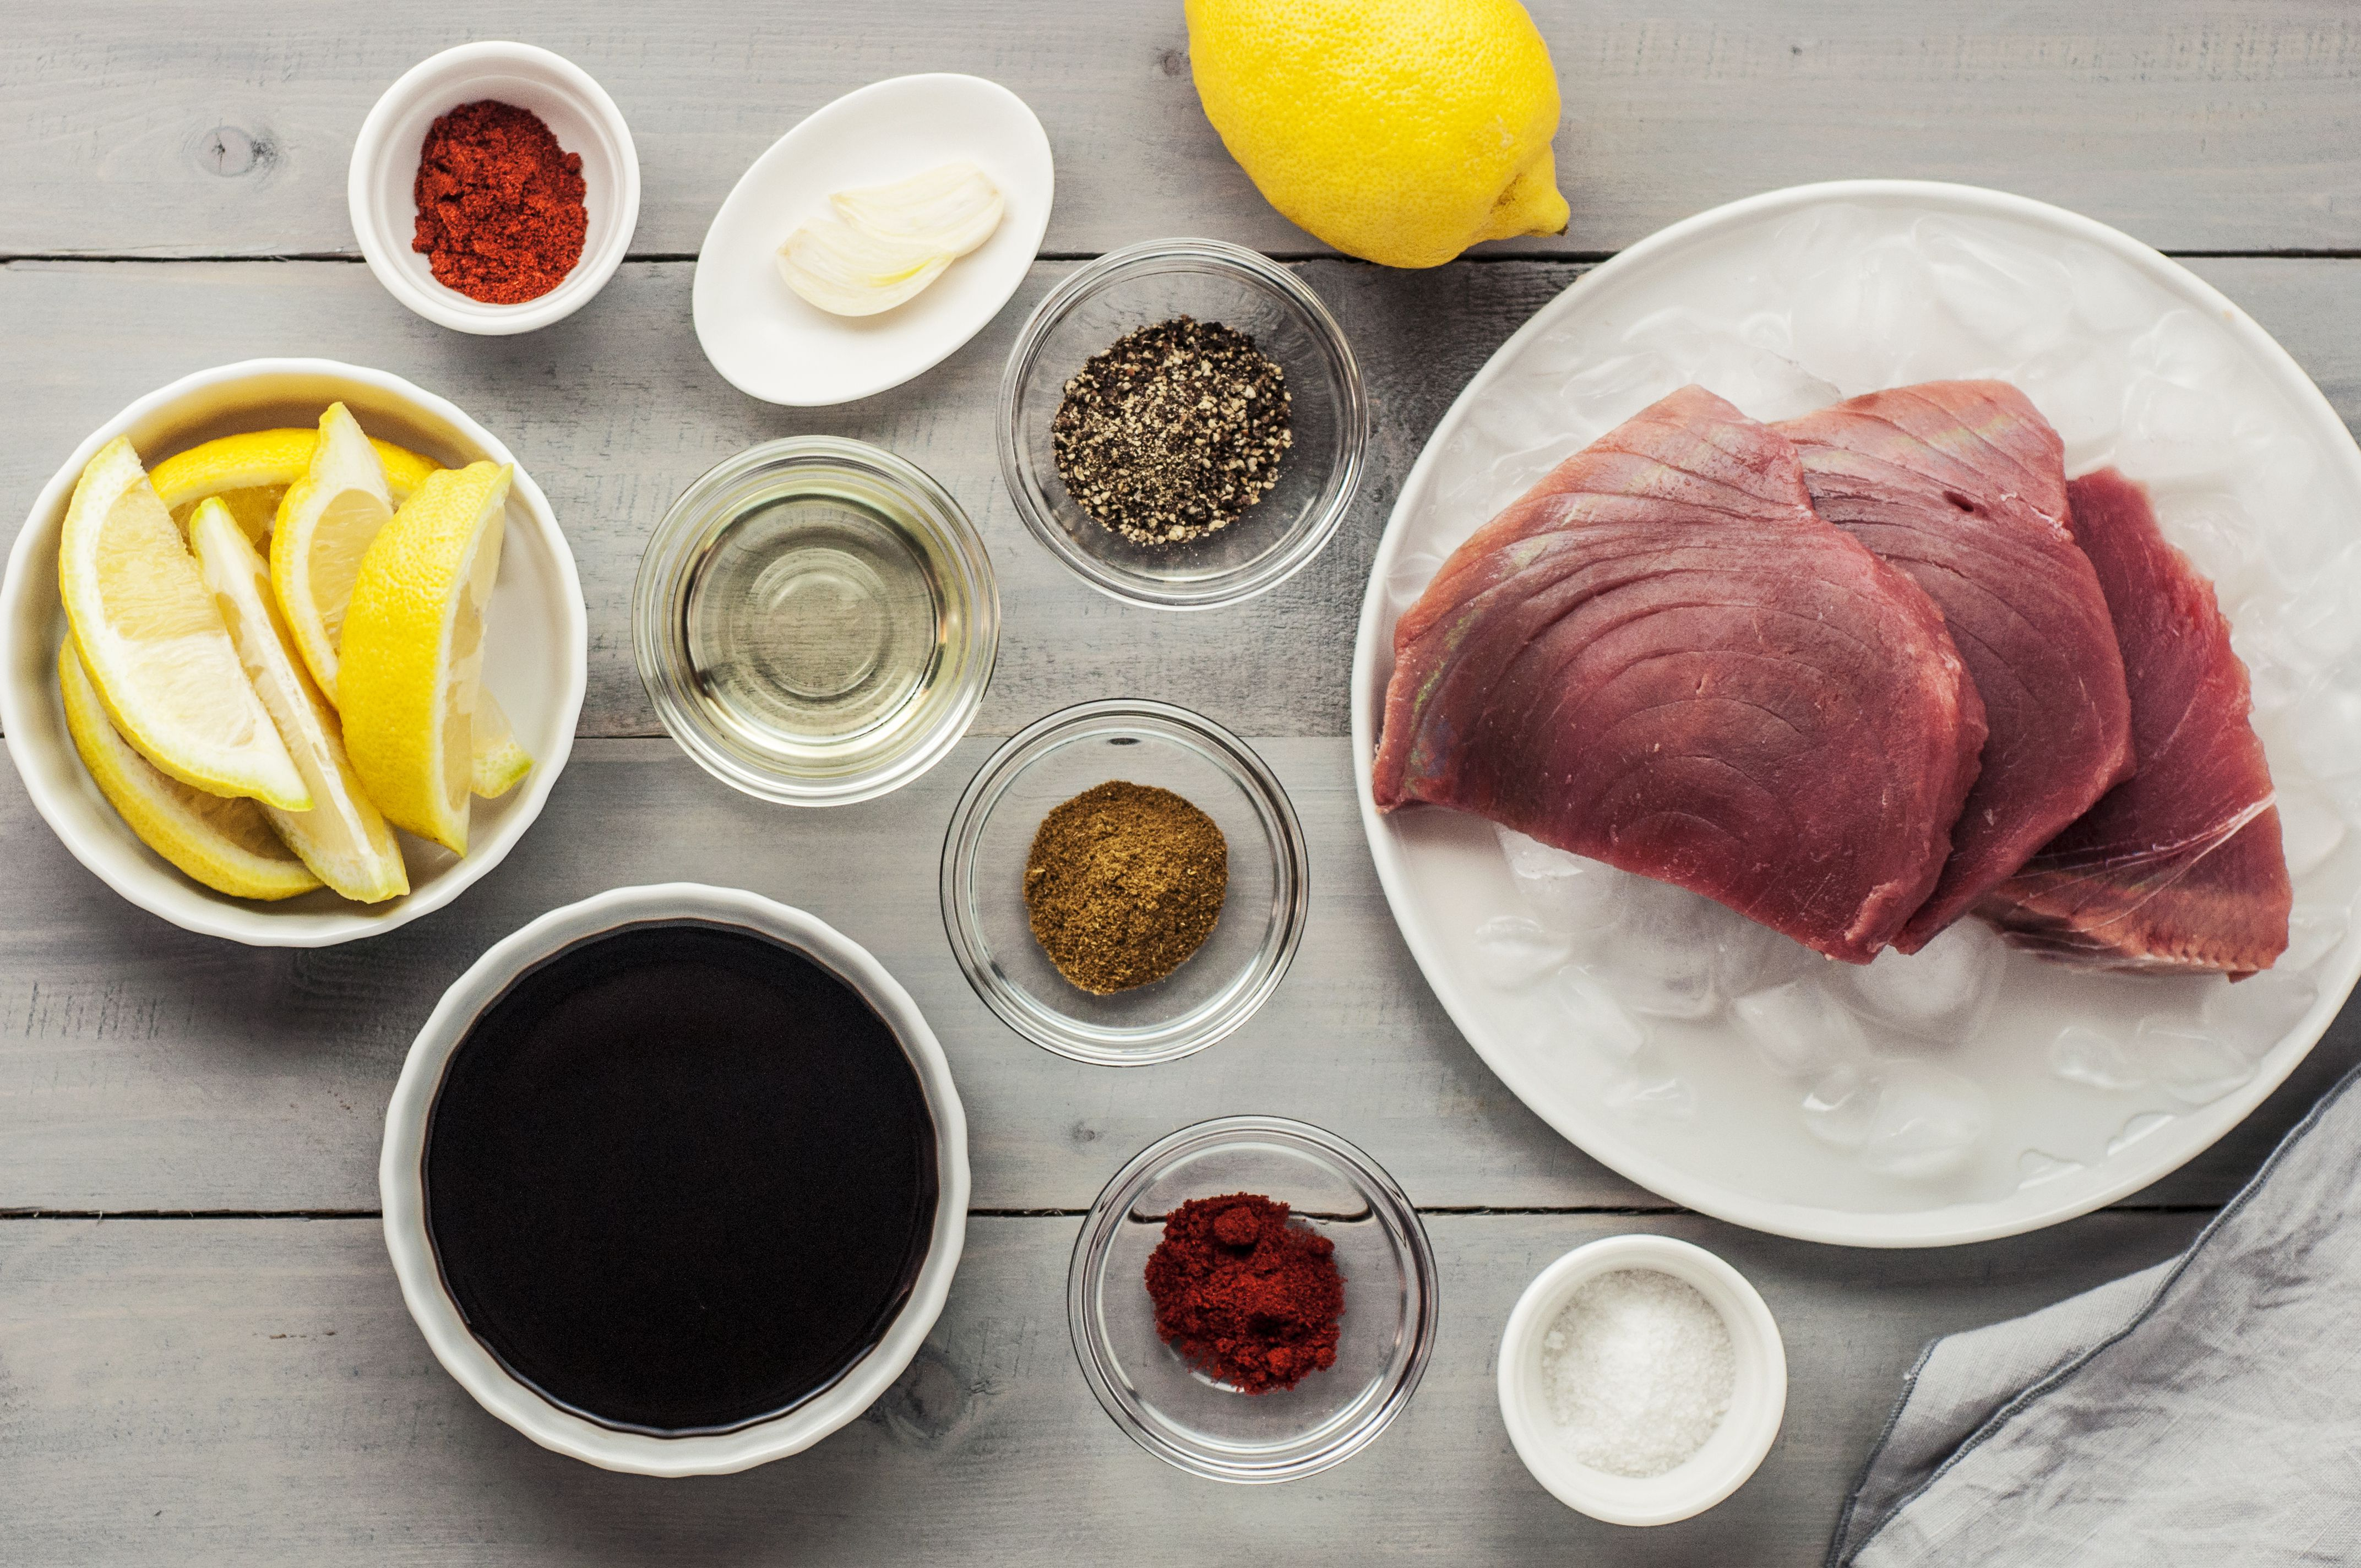 Ingredients for making spice-rubbed seared tuna steaks